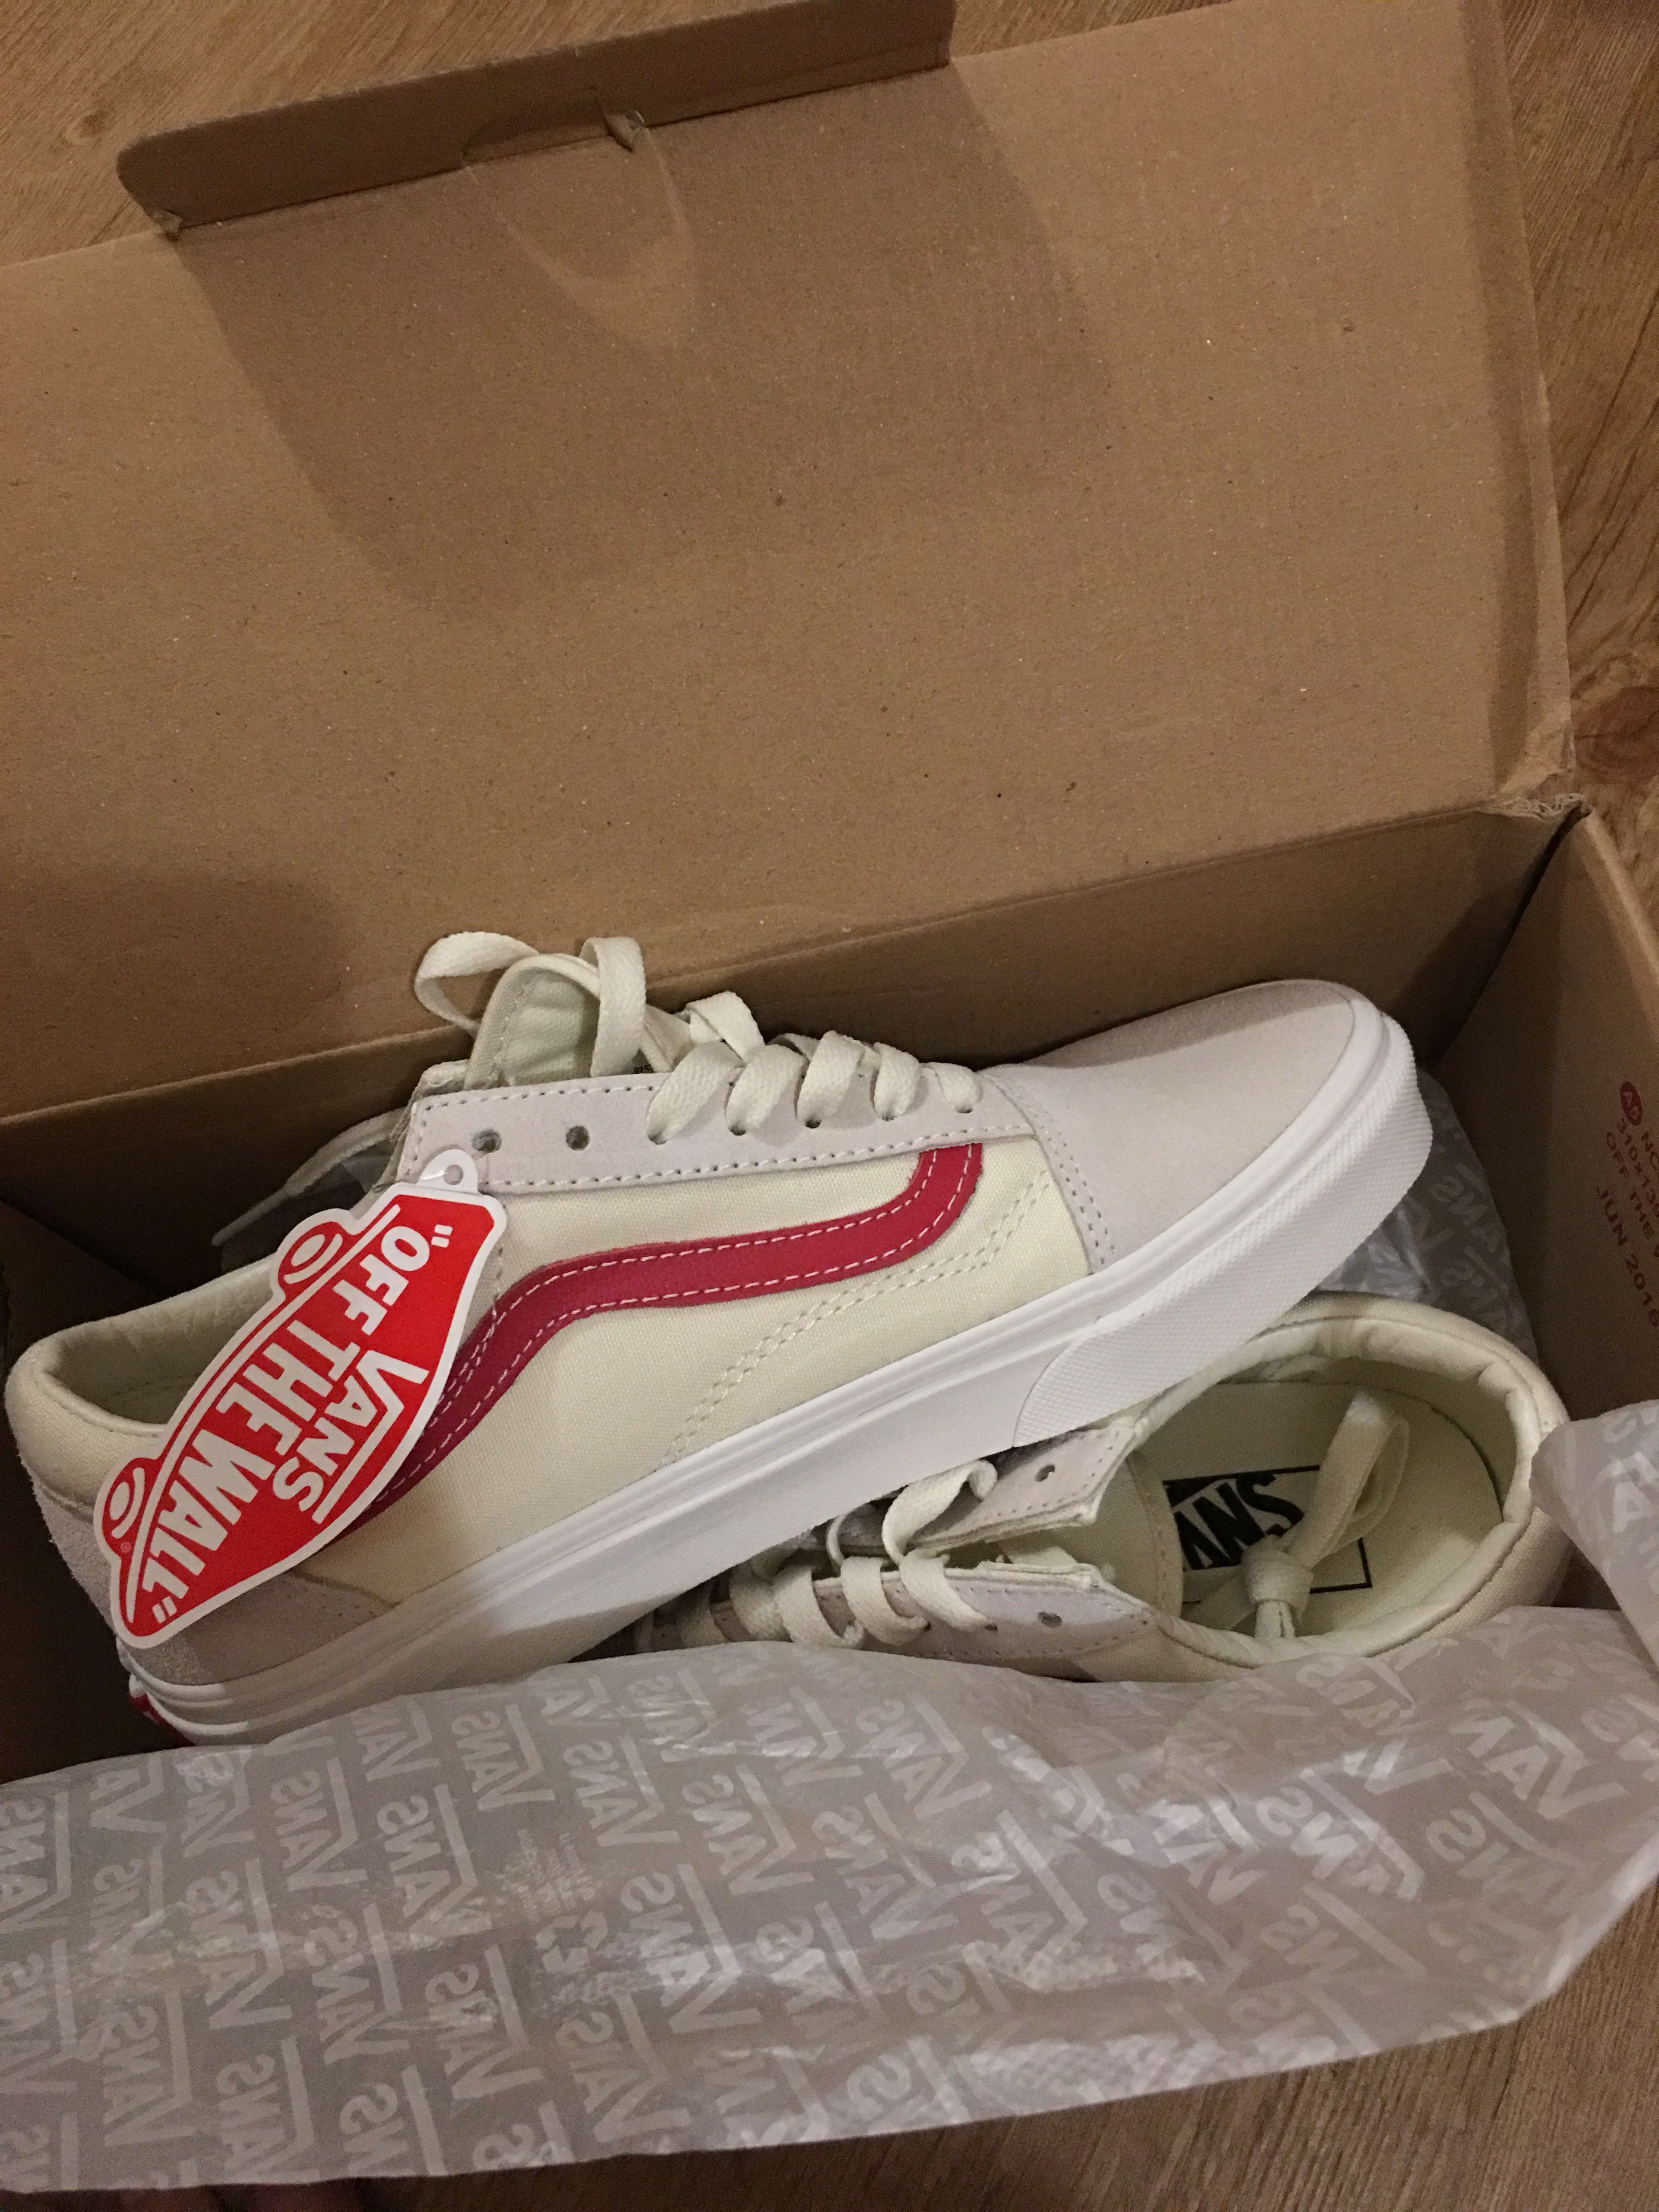 6d775f78ec Vans Old Skool Rococco Red   Vintage White Style 36 Marshmallow ...